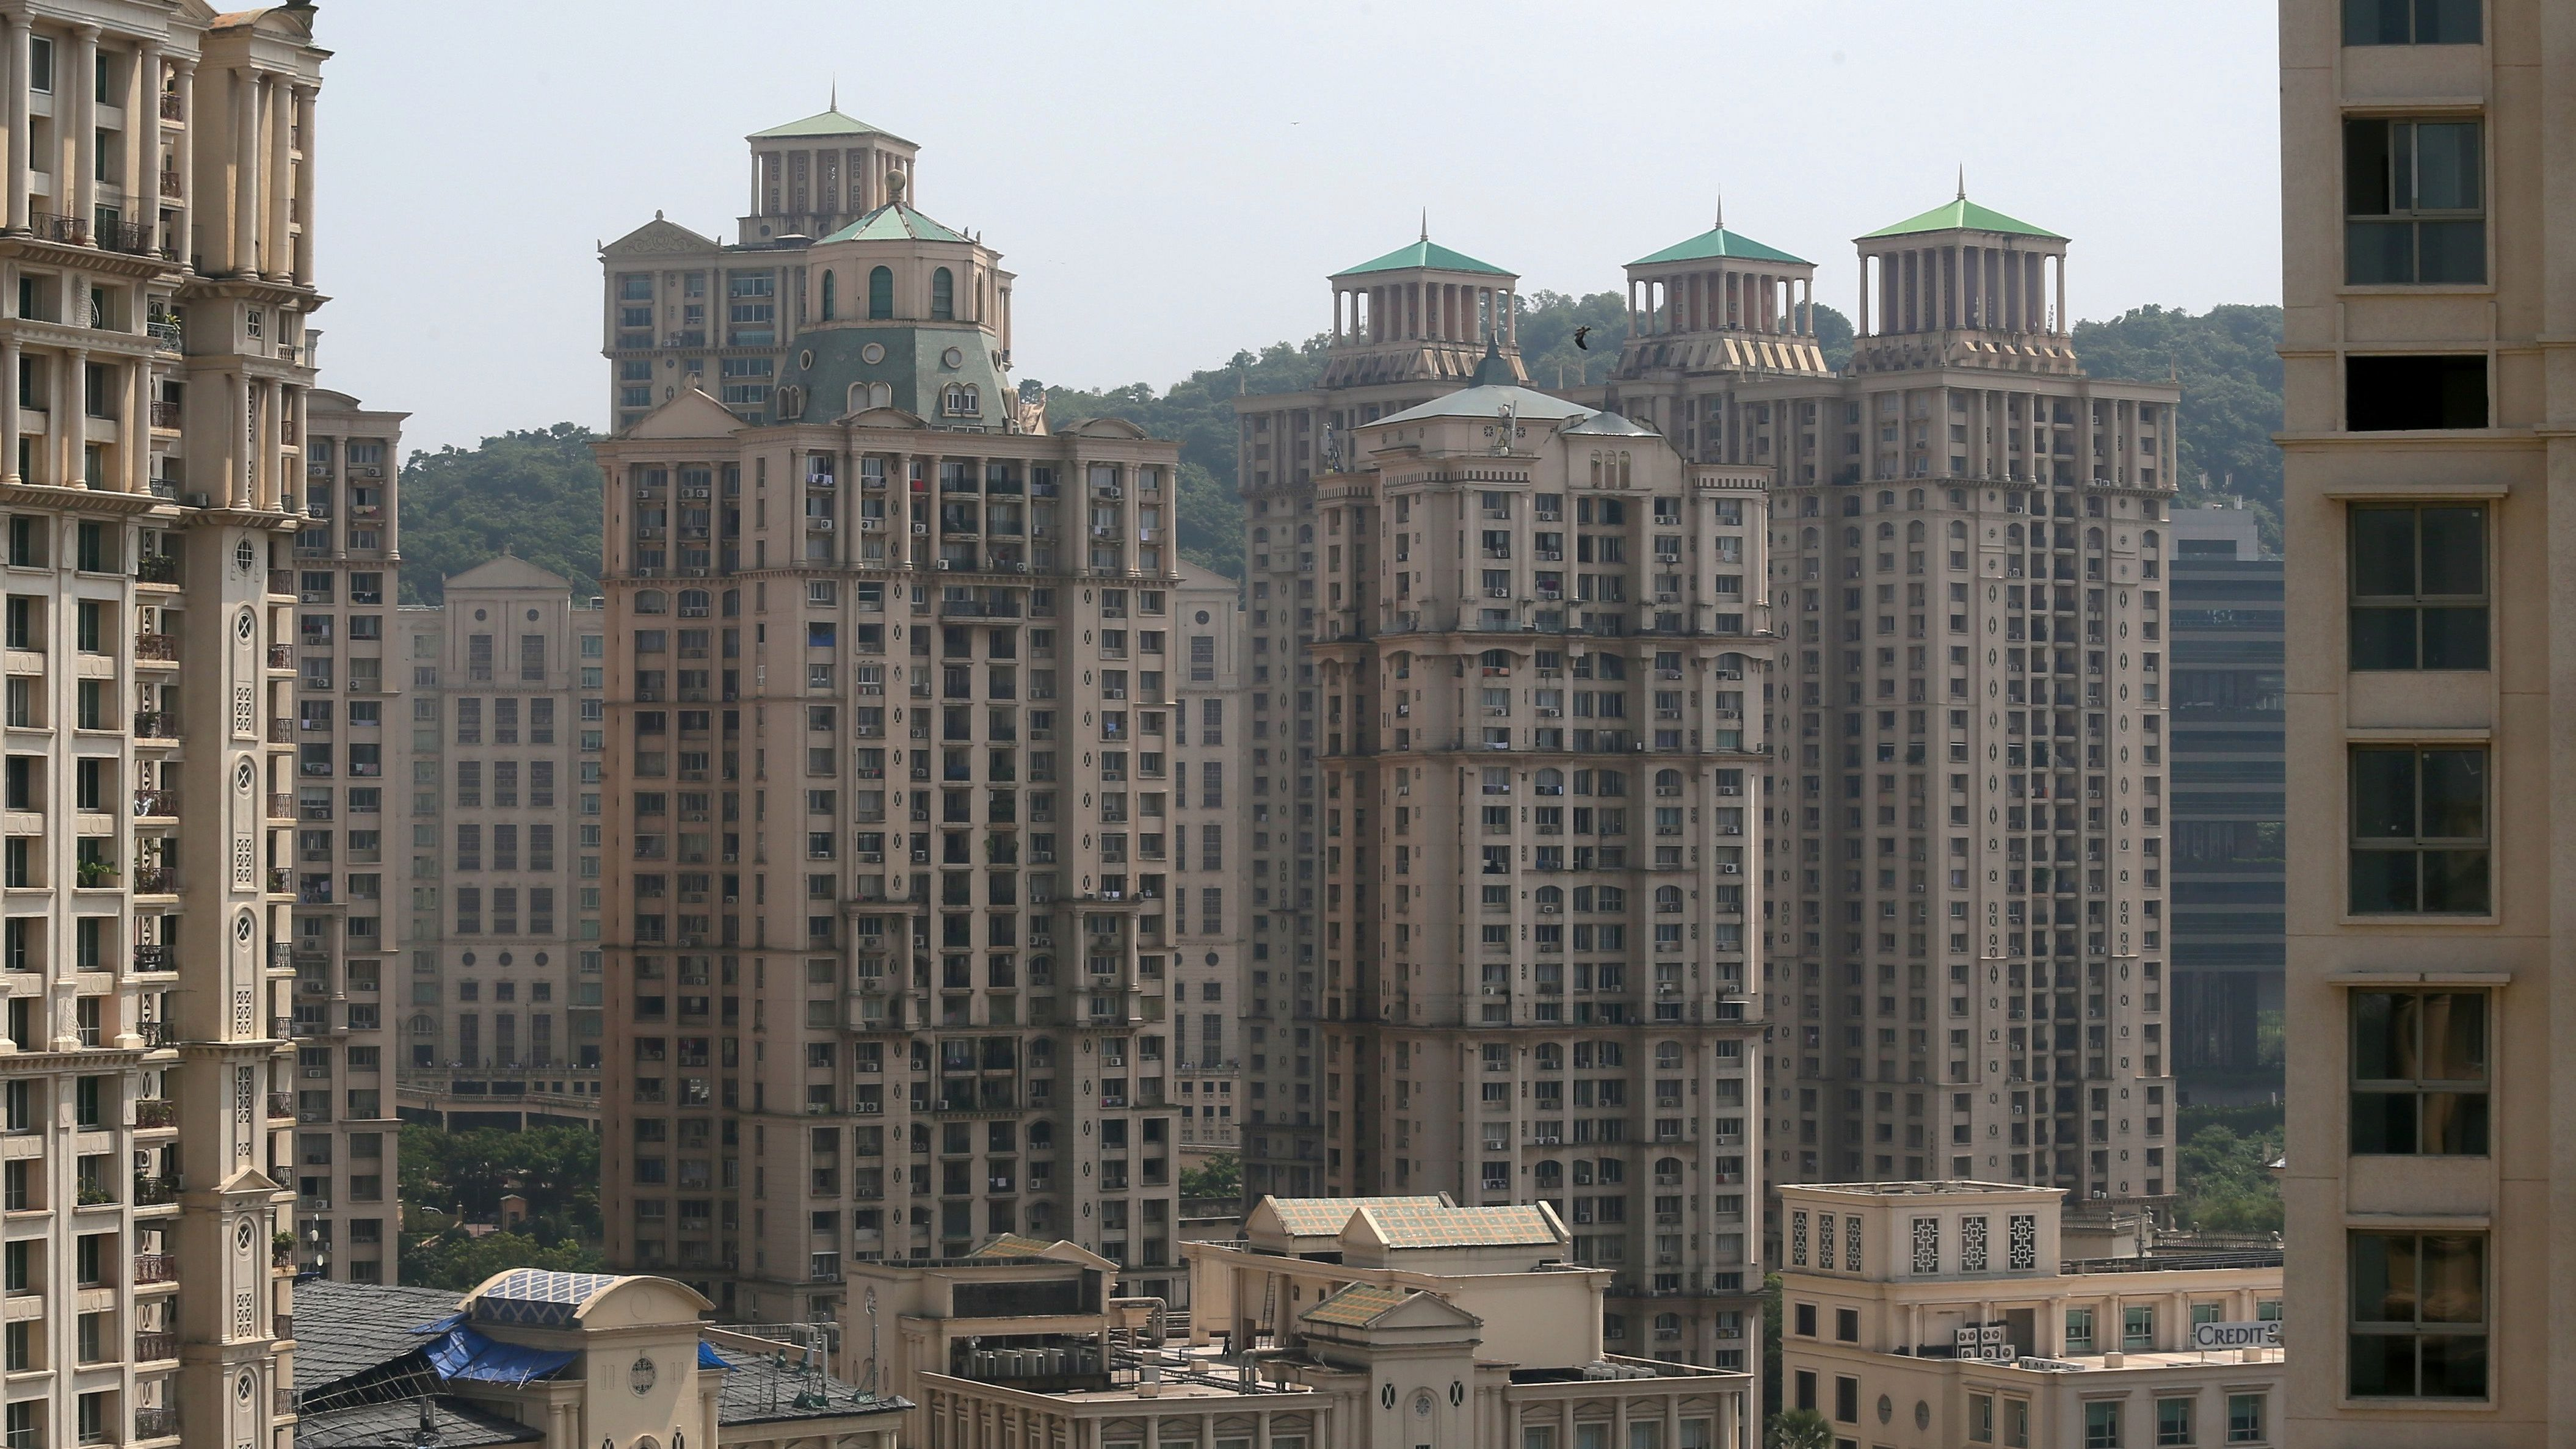 High-rise residential buildings are seen in this cityscape of Mumbai